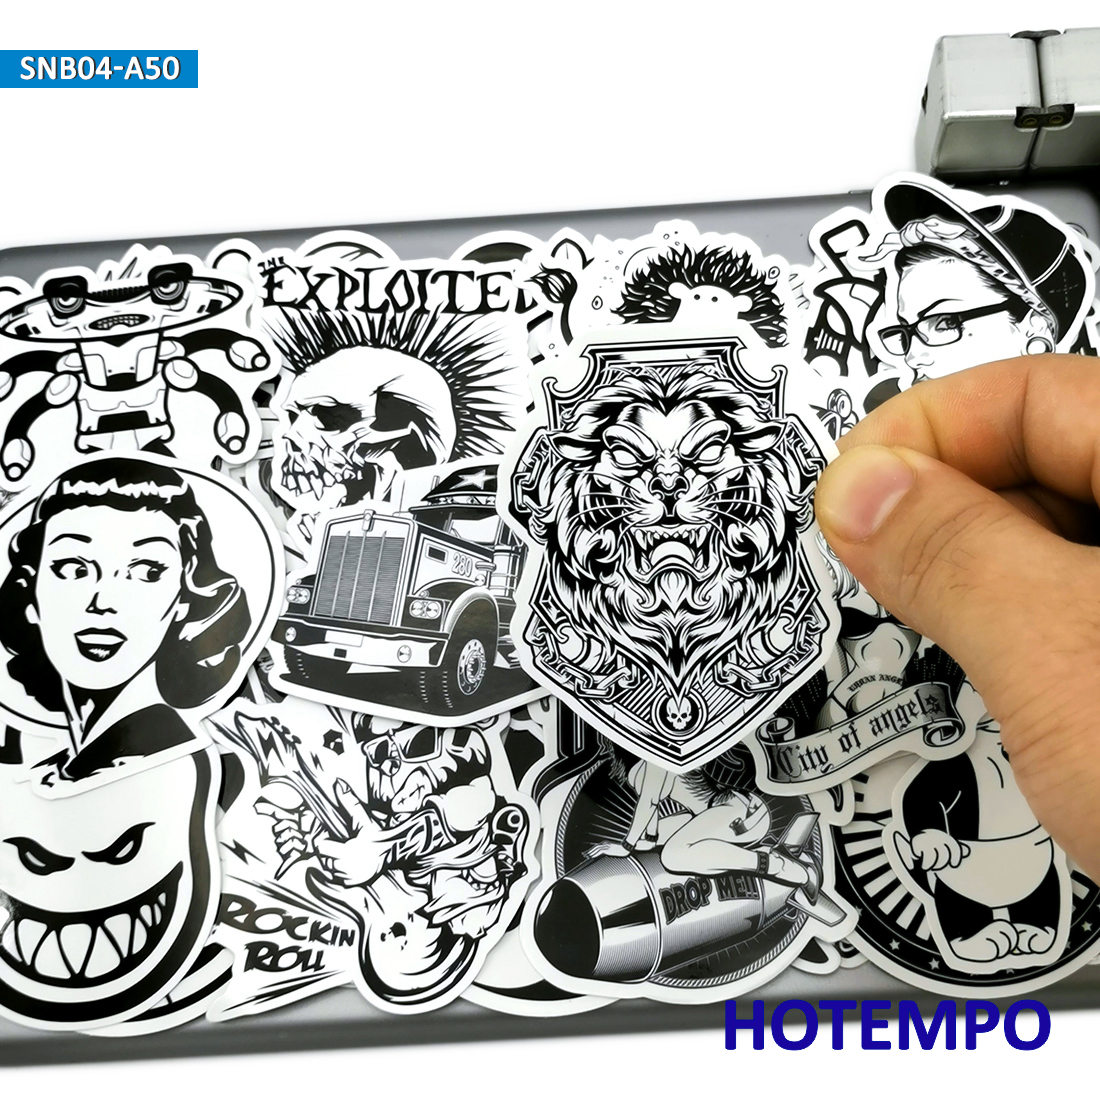 50pcs Black And White Graffiti Mix Funny Fashion Stickers For Mobile Phone Laptop Luggage Skateboard Bike Car Art Style Stickers